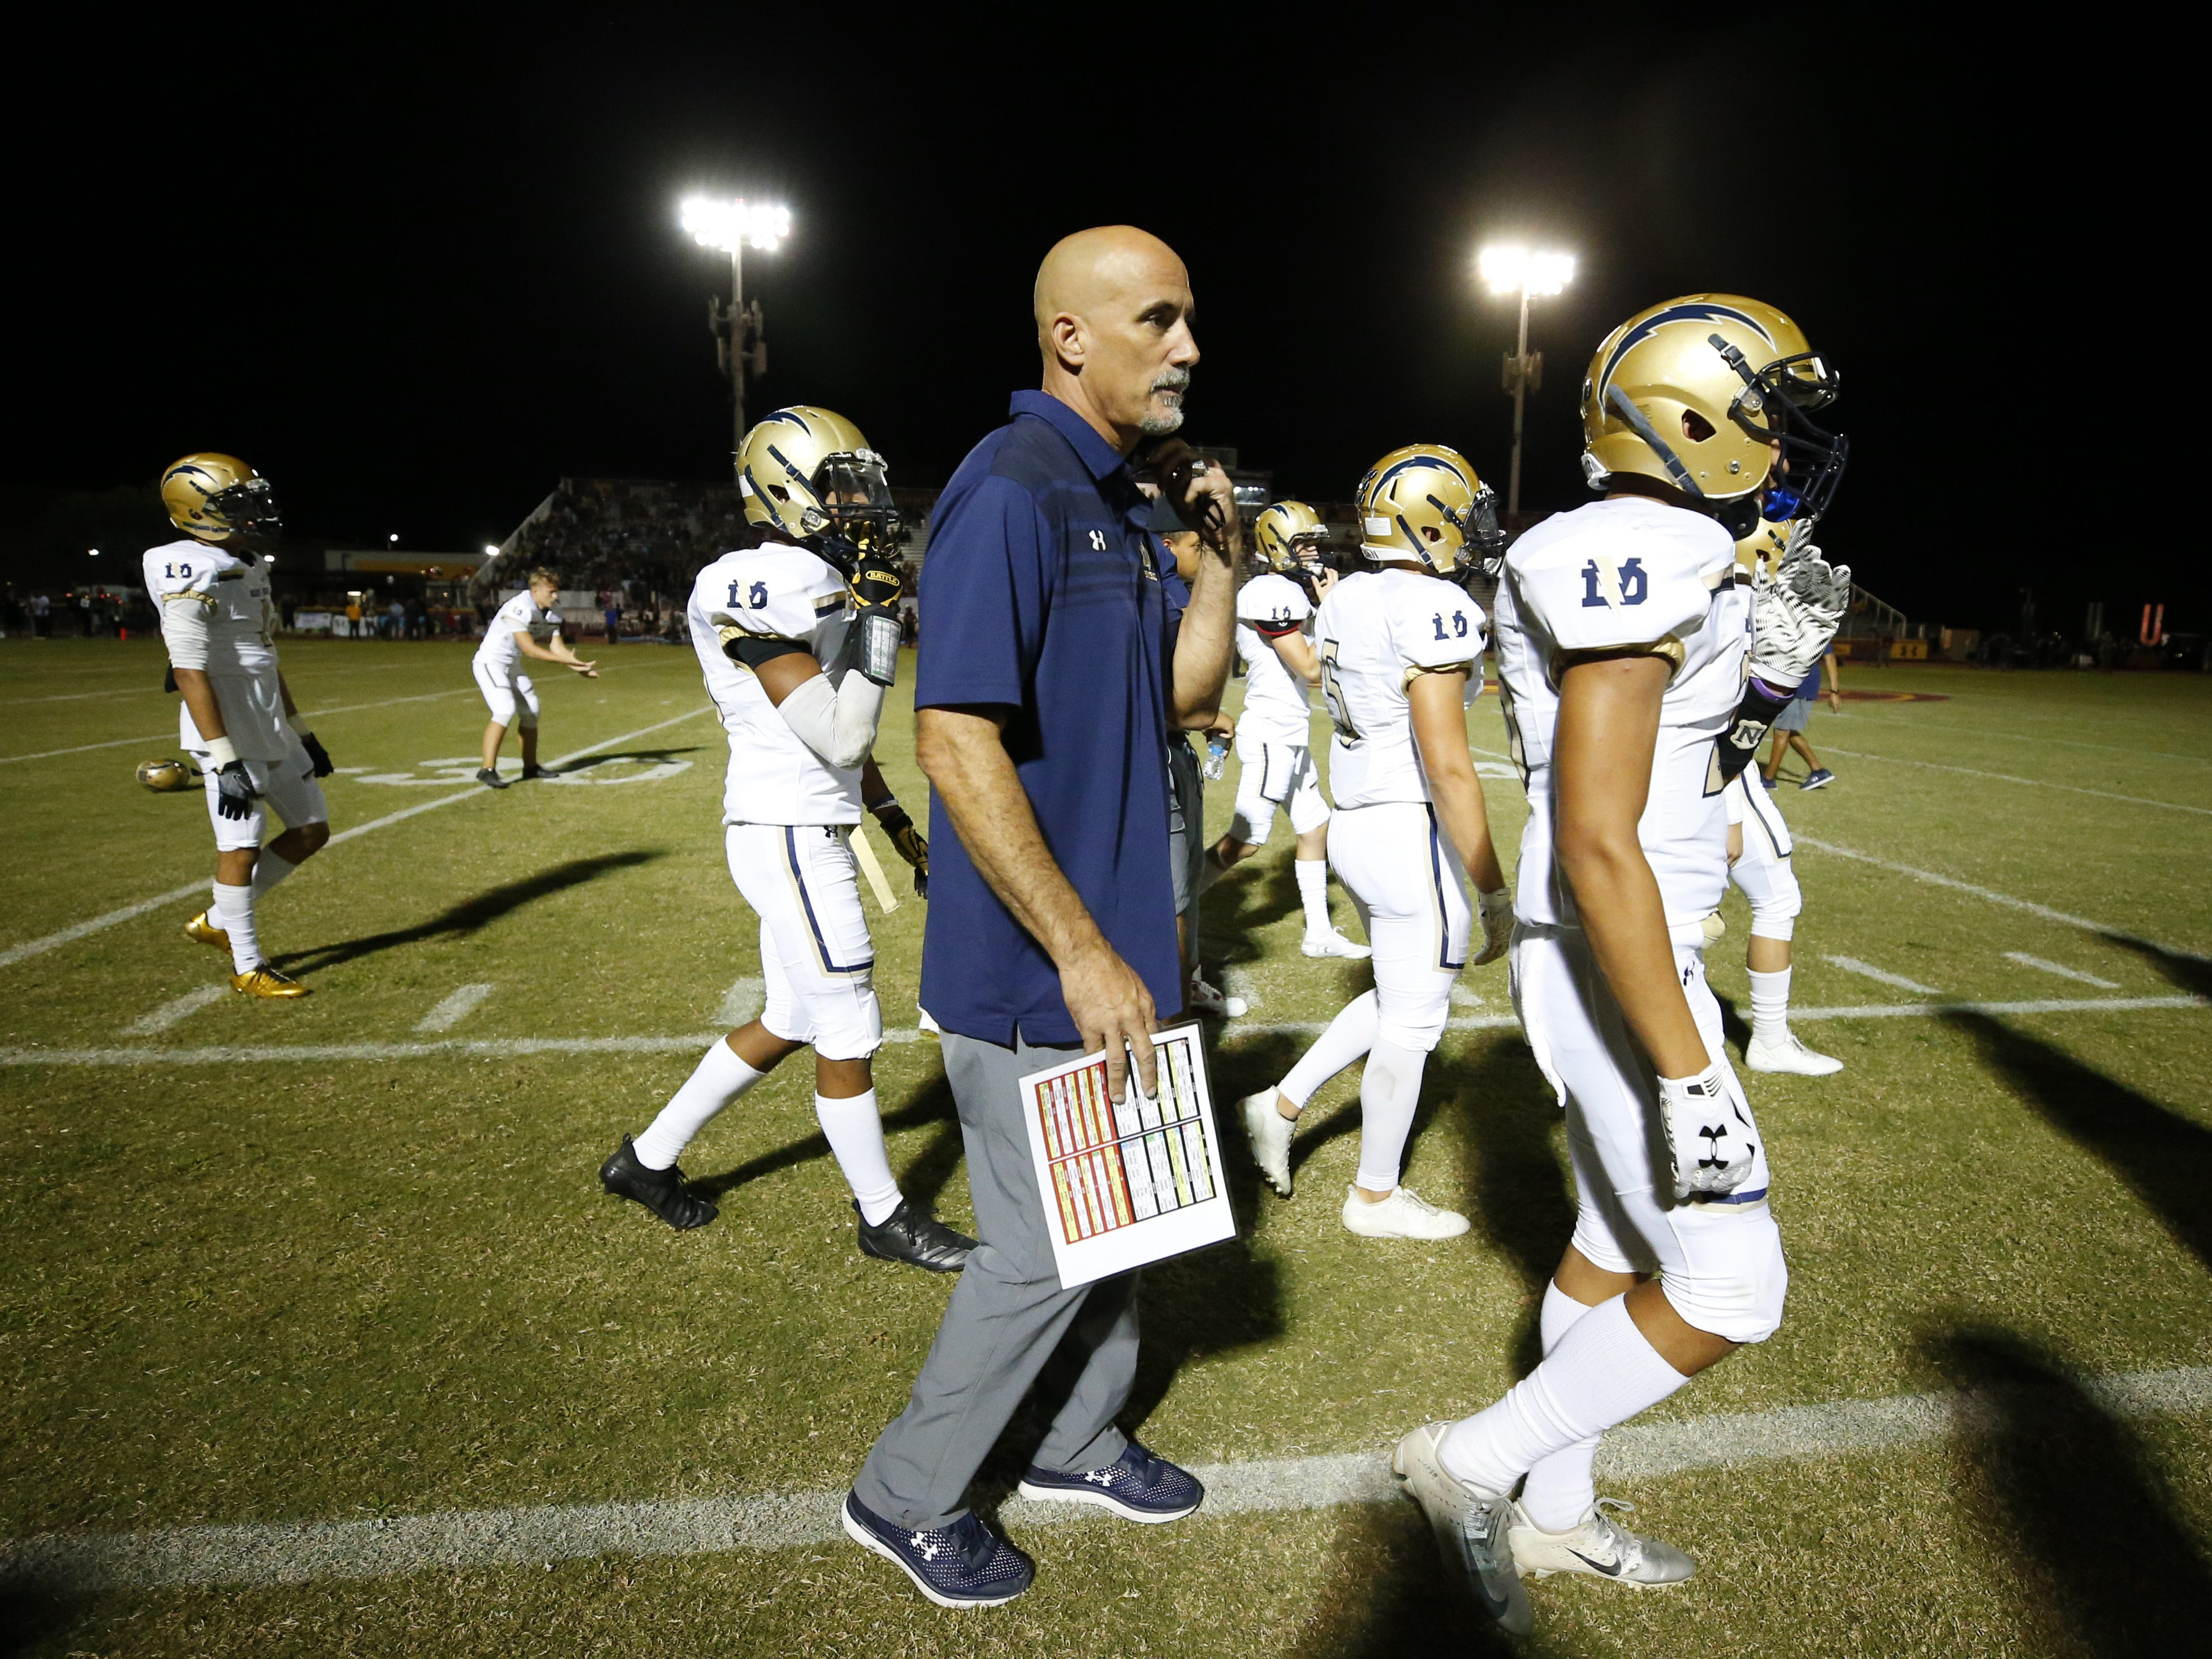 Desert Vista head coach Dan Hinds walks on the sidelines after talking to his players during a high school football game against the Mountain Pointe at Mountain Pointe in Phoenix on October 5, 2018. #azhsfb